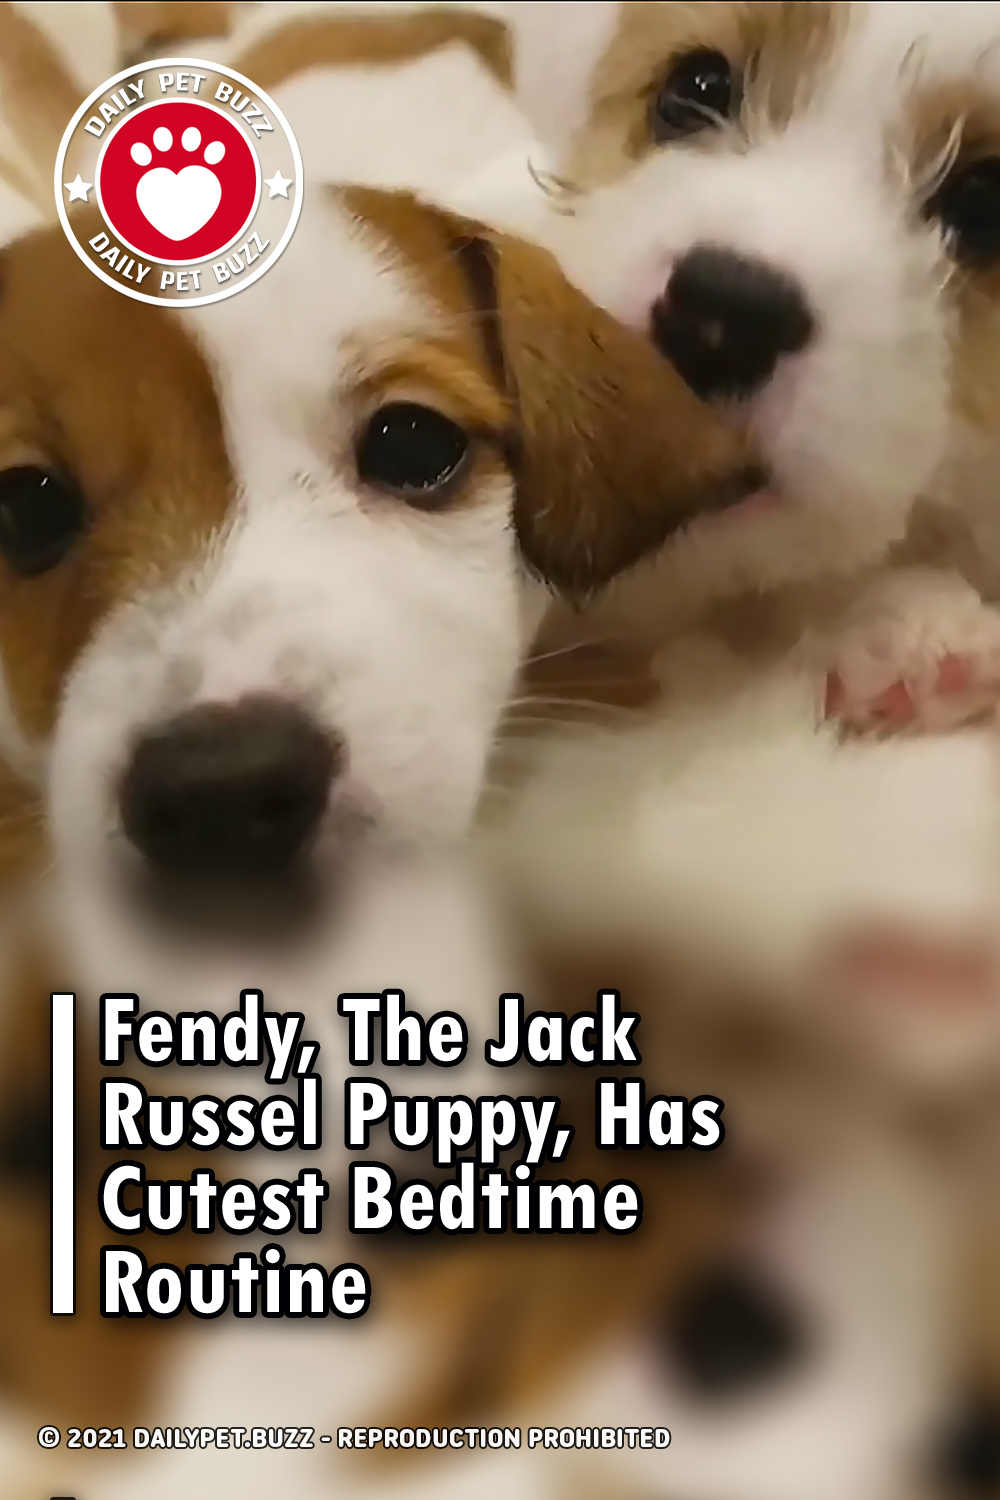 Fendy, The Jack Russel Puppy, Has Cutest Bedtime Routine